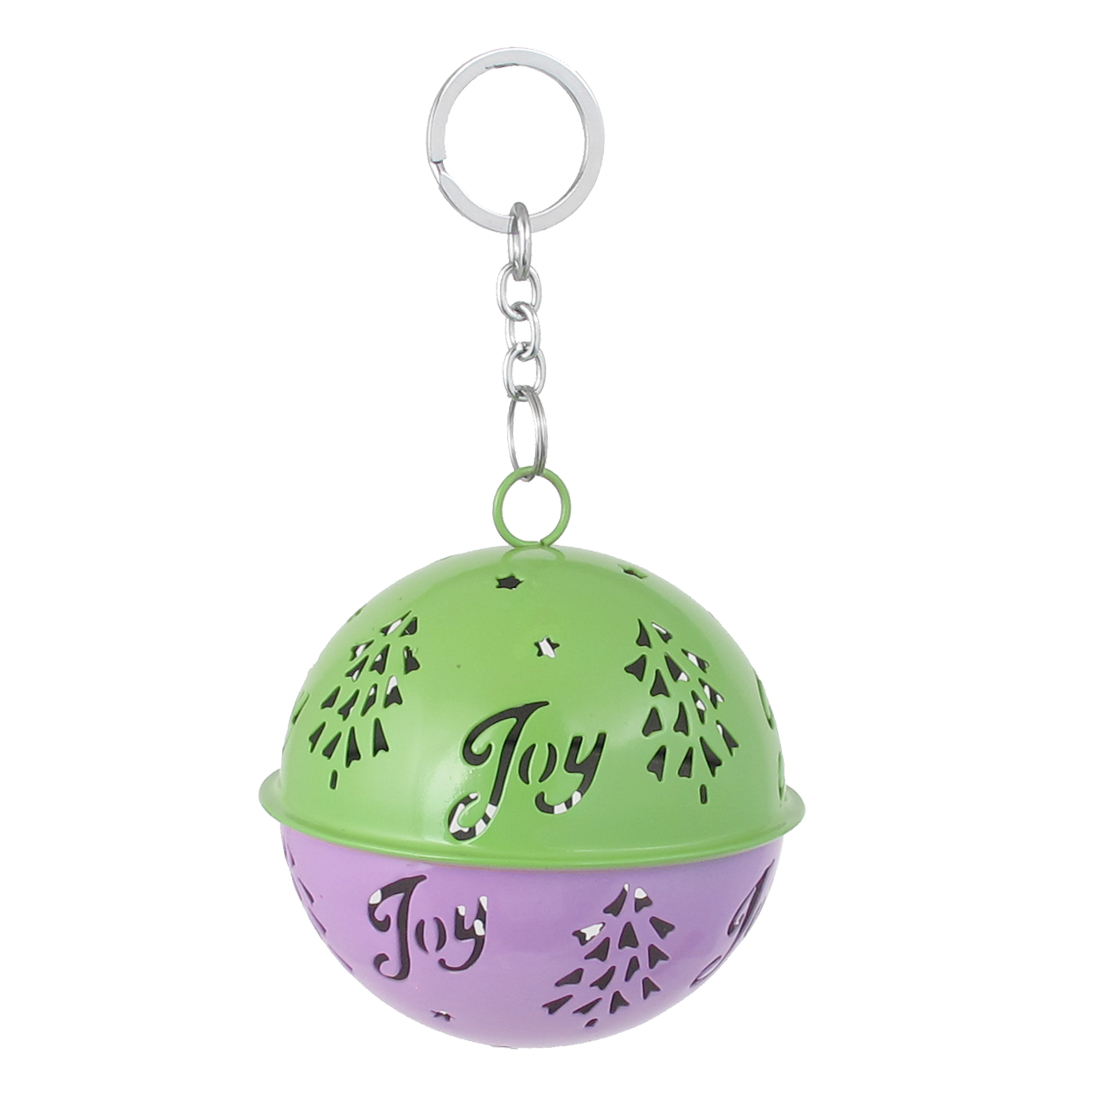 85mm Diameter Purple Green Metal Christmas Tree Detail Ball Shape Keychain Hollow Out Design Jingle Ring Bell Ornament for Celebration Party Case